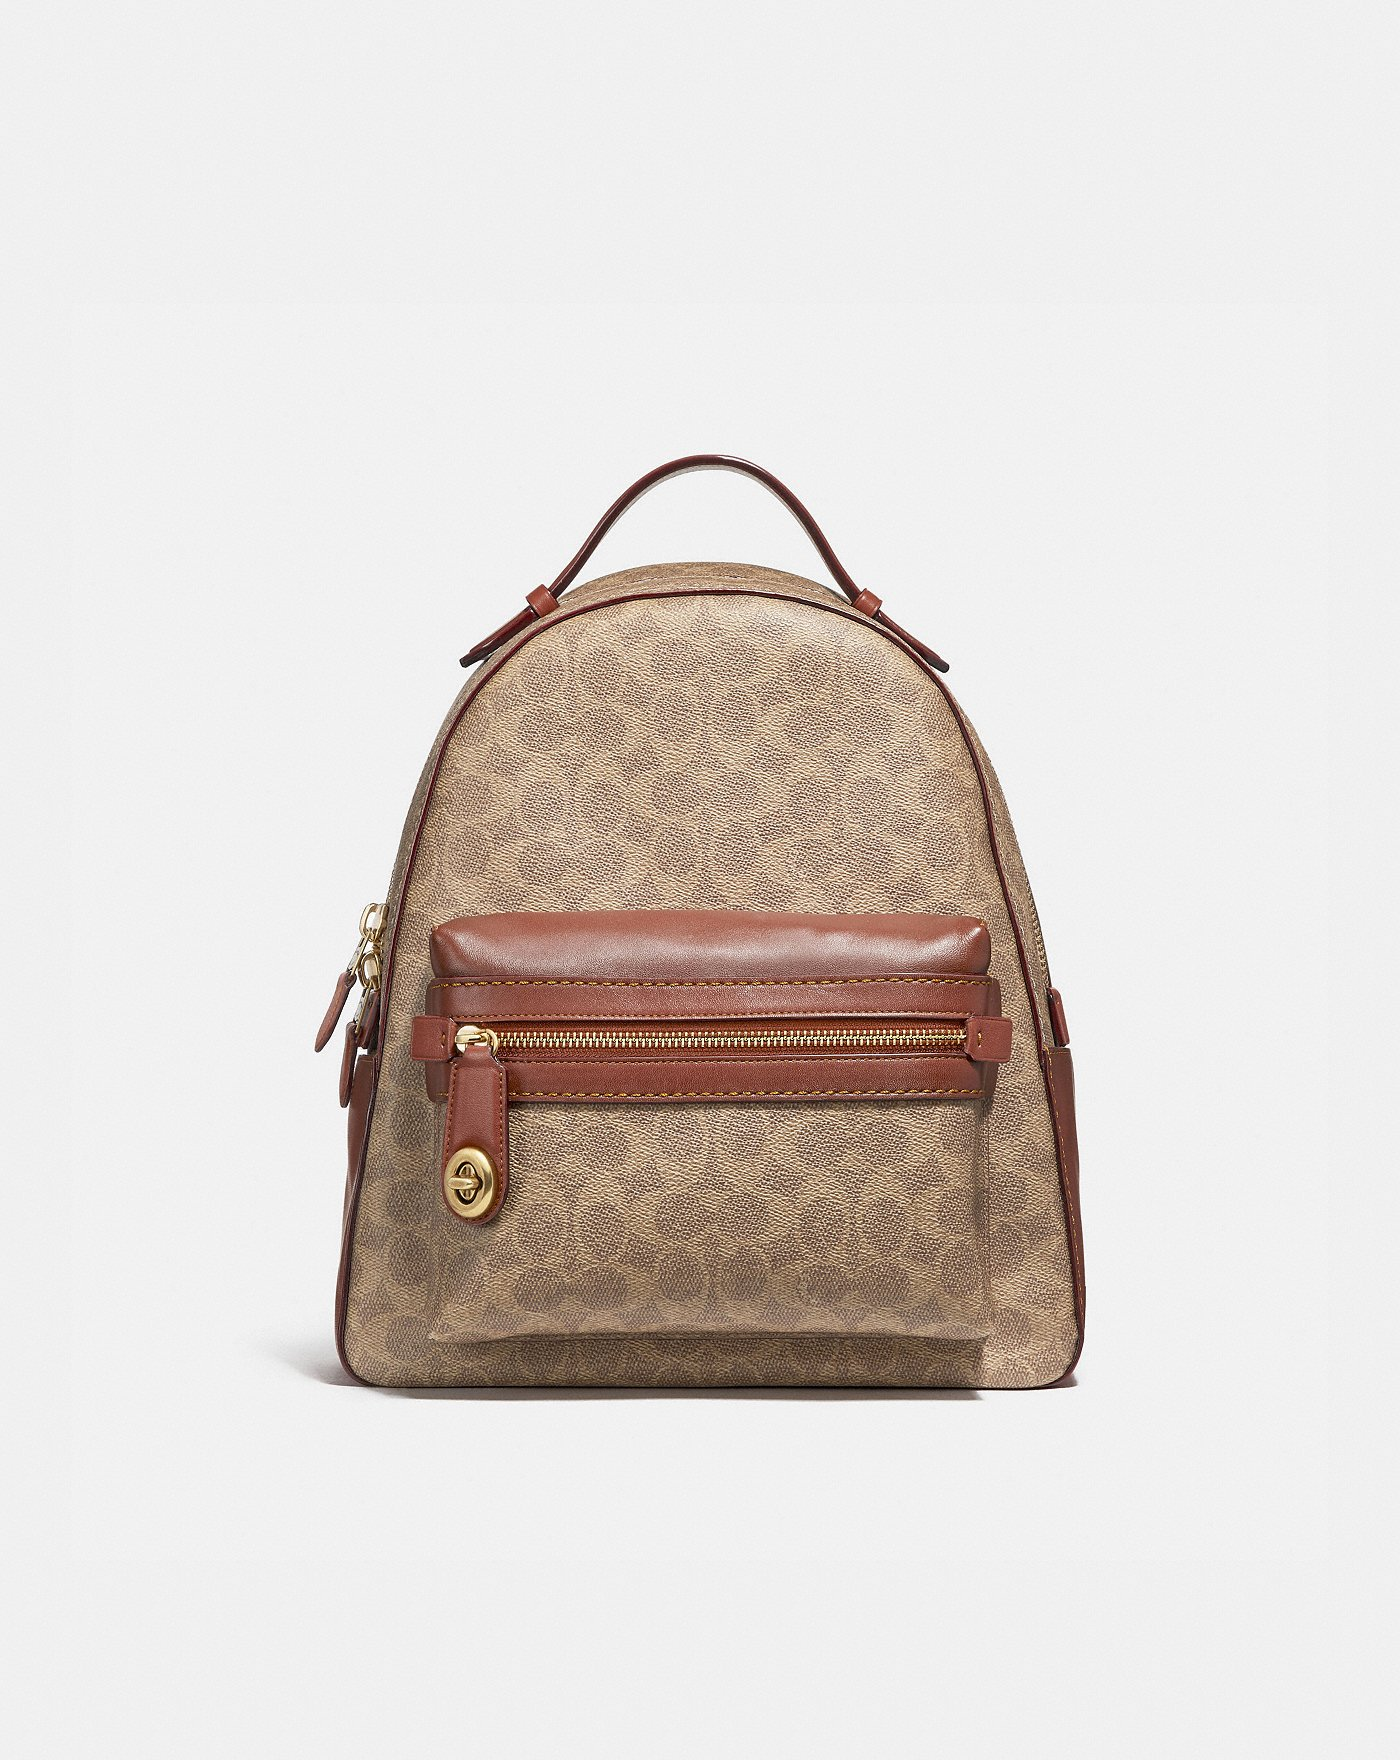 55289f7d53c9 COACH  Campus Backpack in Signature Canvas